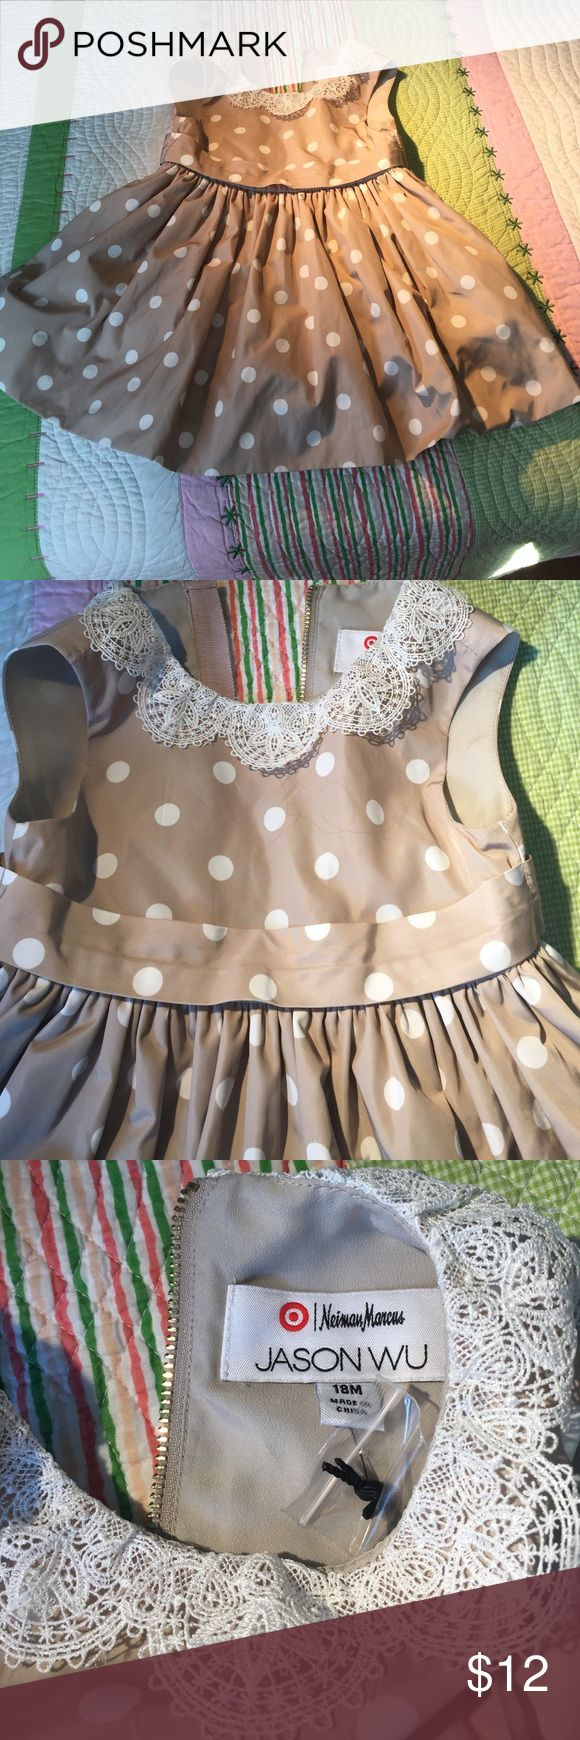 Neiman Marcus, Jason Wu for Target girl's dress. Beautiful cream dress with white polka dots. It is lined in cream acetate and it has a lace cream colar. Beautiful dress. Neiman Marcus Dresses Formal